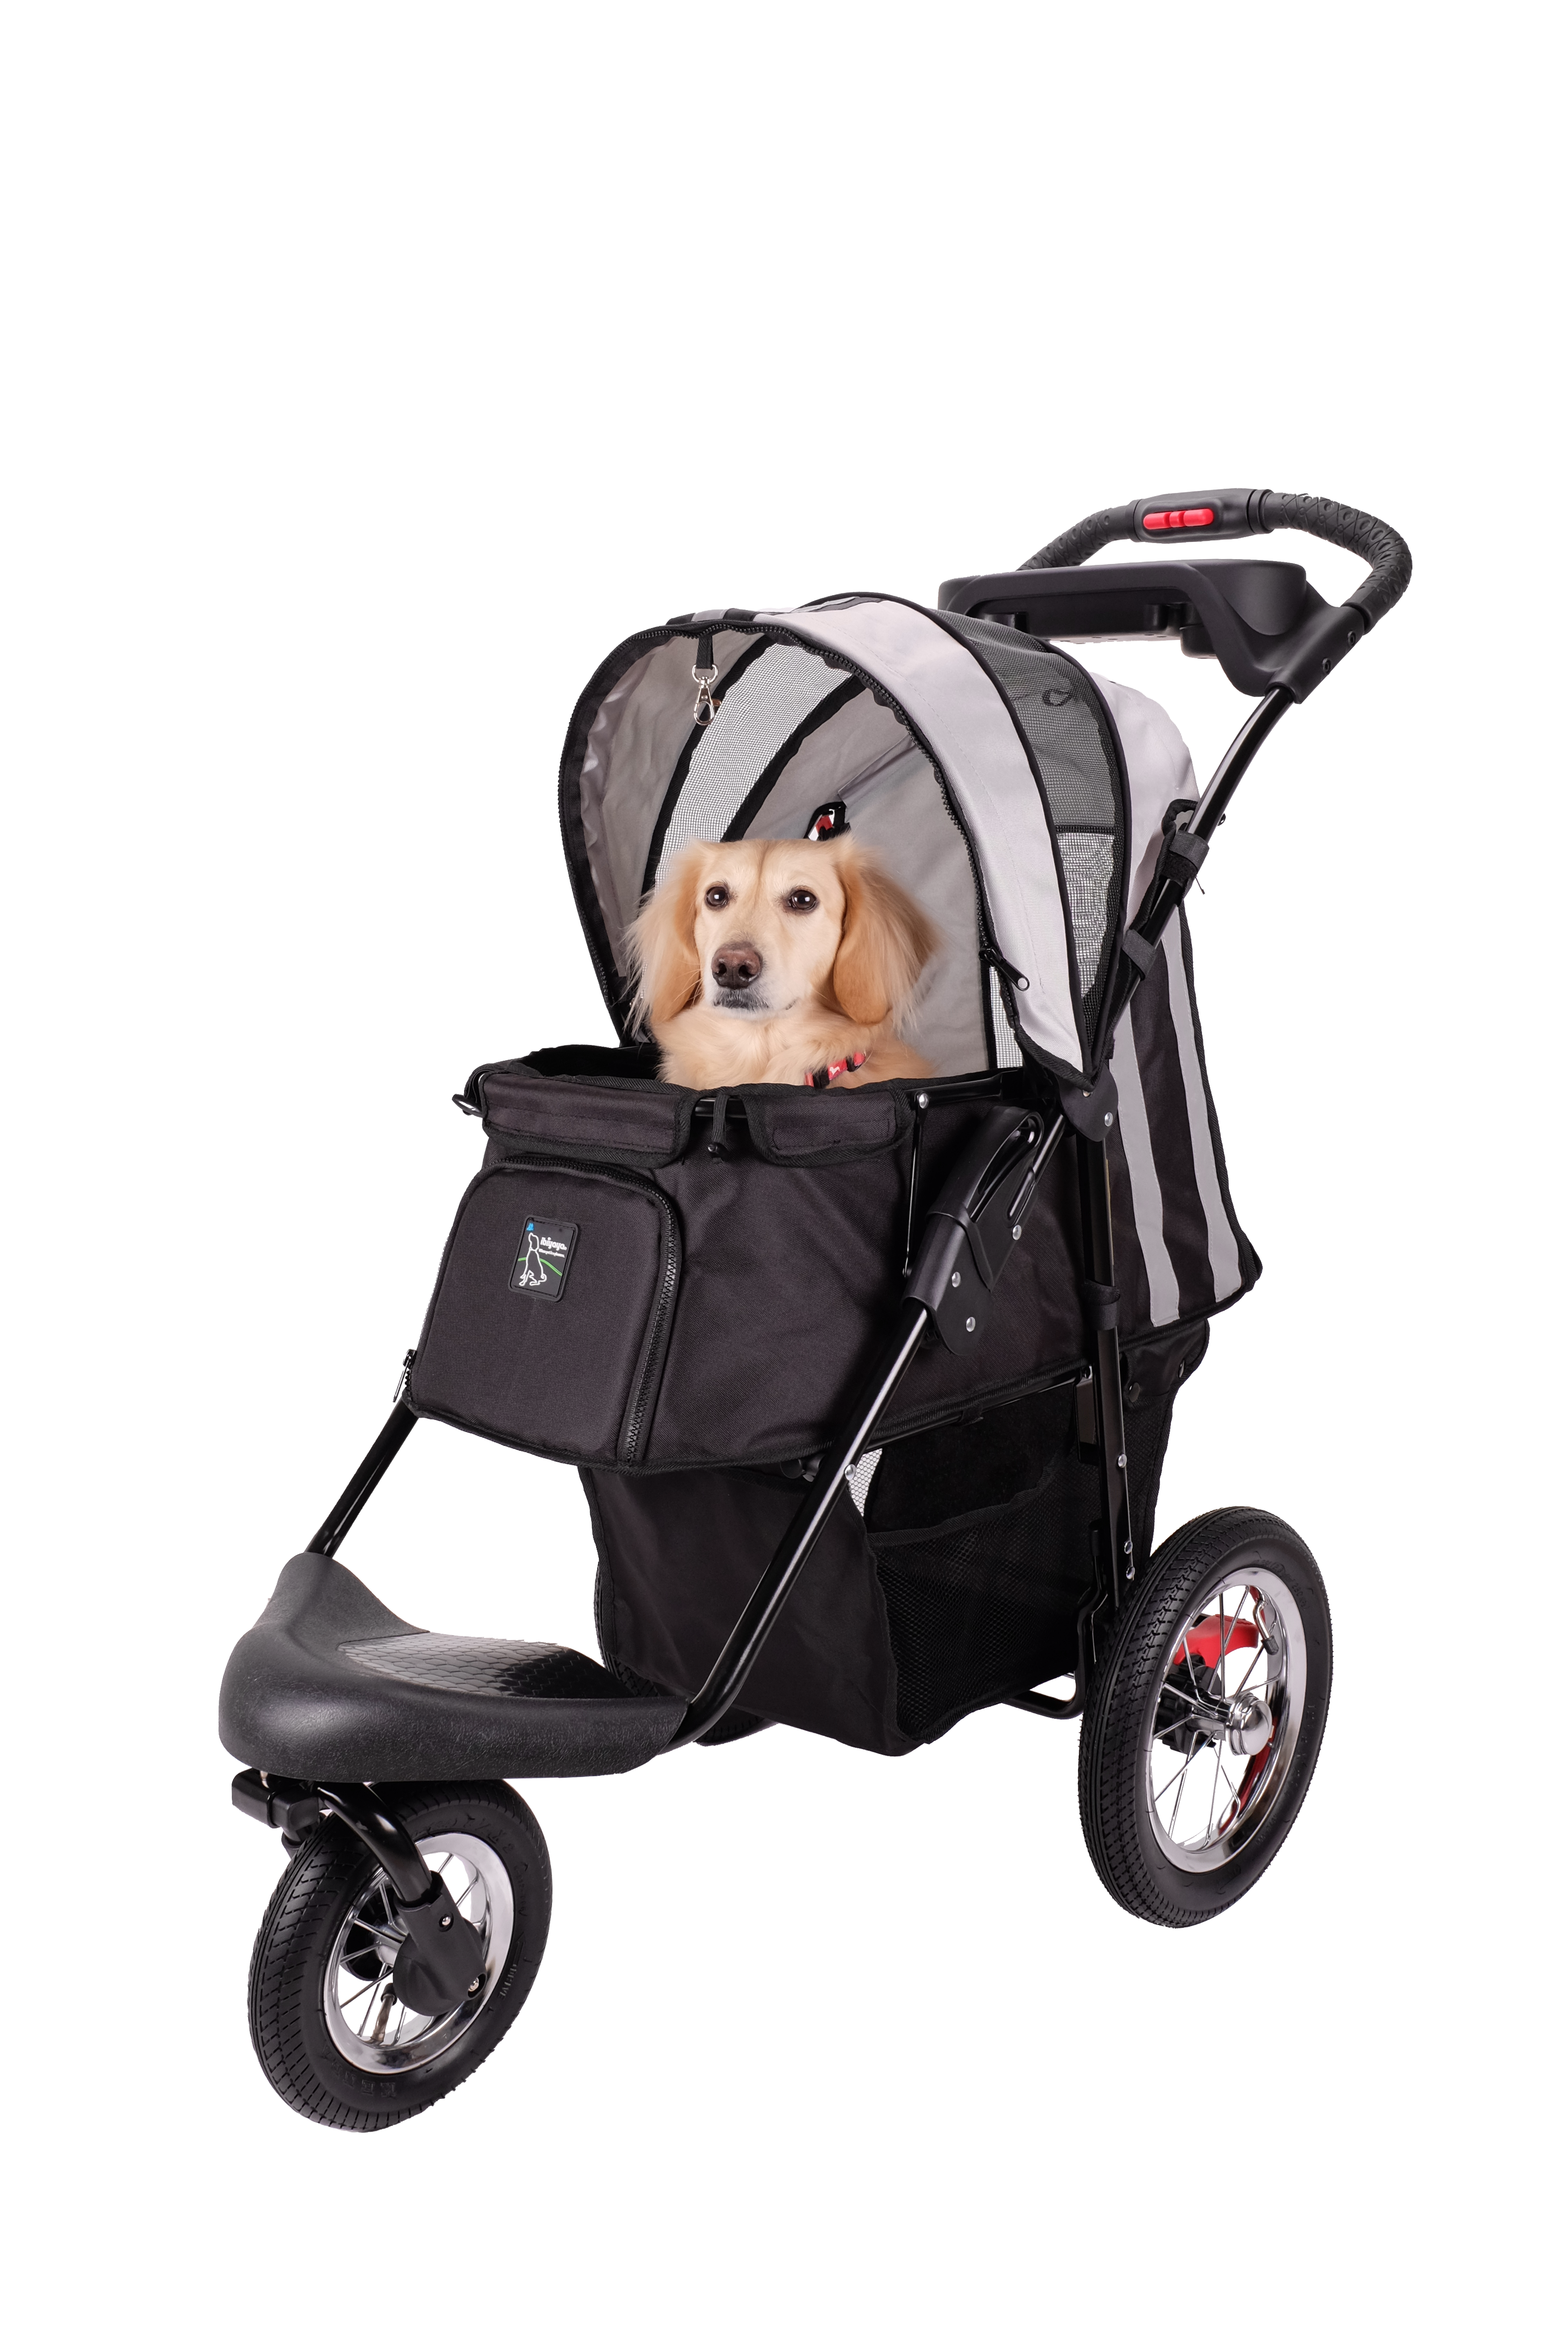 Dog stroller clipart picture black and white library dog stroller | picture black and white library